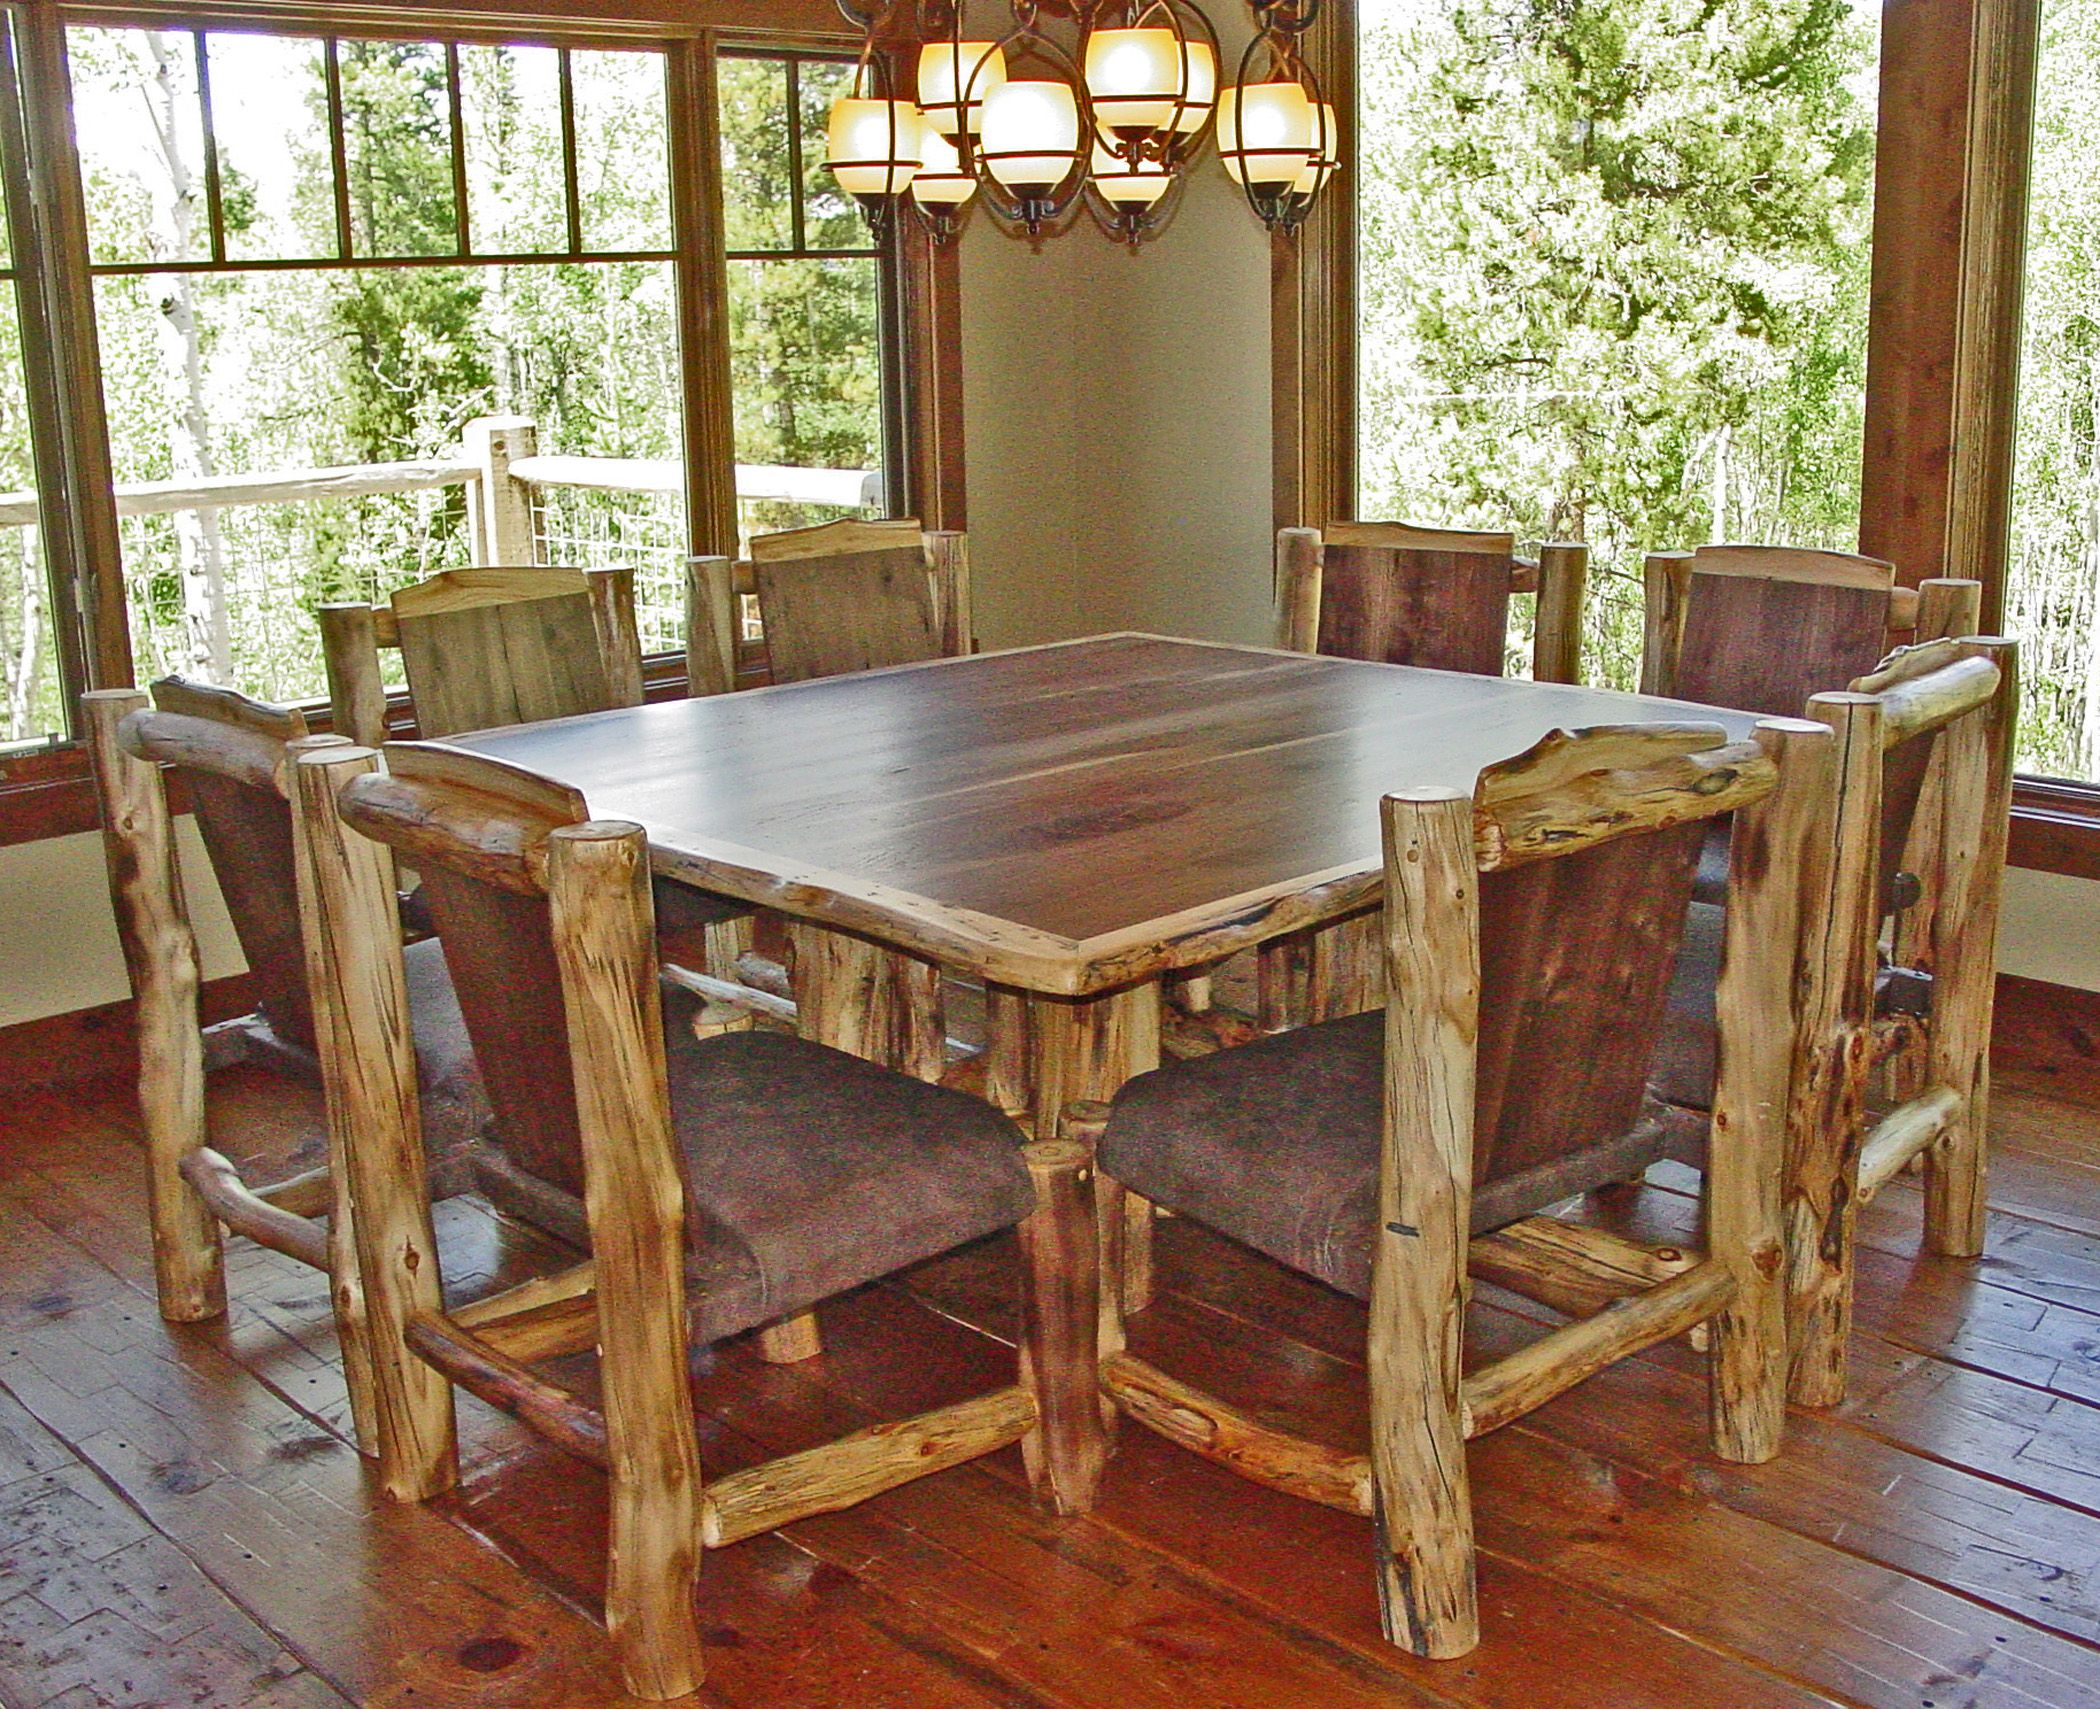 images of rustic dining tables | What\'s New in Mountain Architecture ...